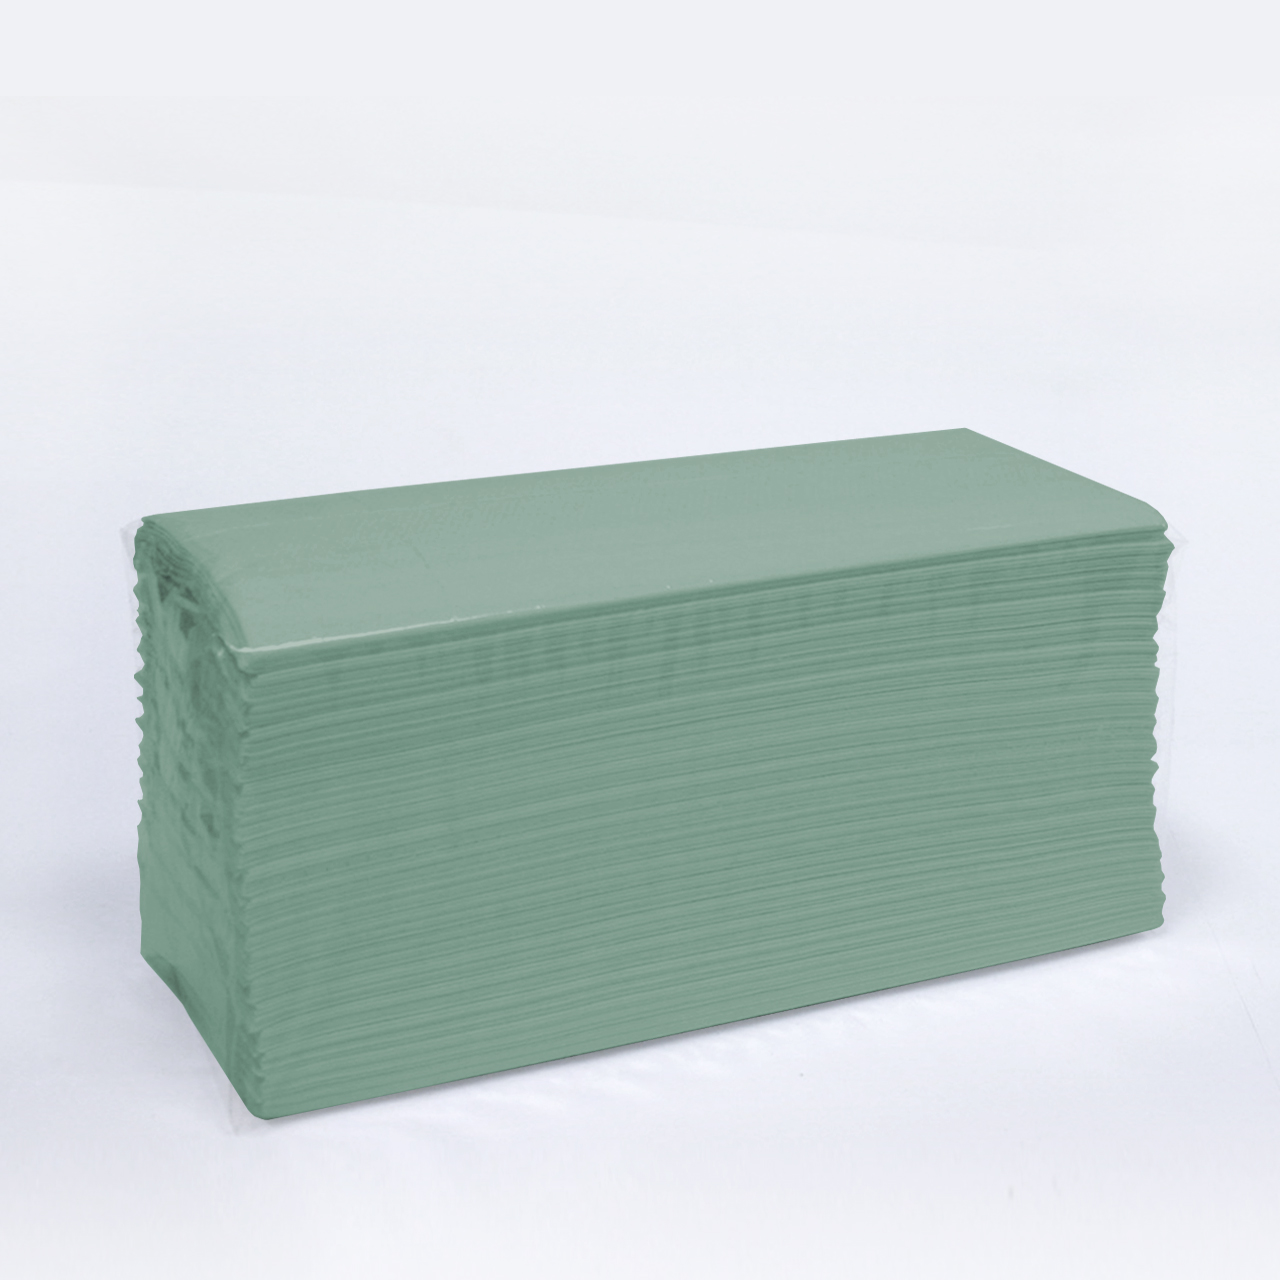 C Fold Hand Towels 1 ply Green